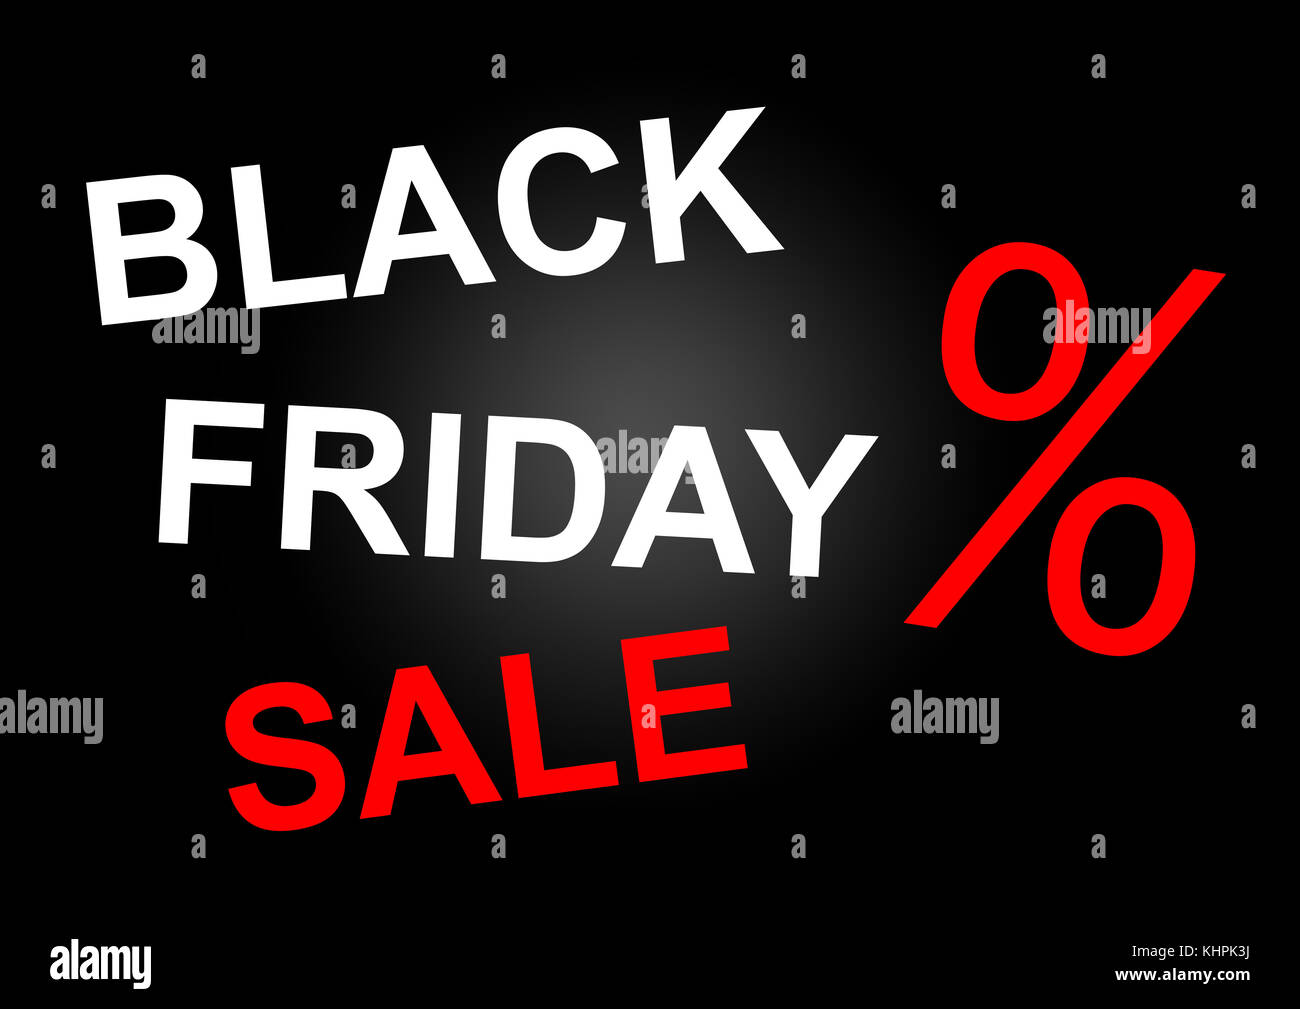 Black Friday Munchen Black Friday Sale München